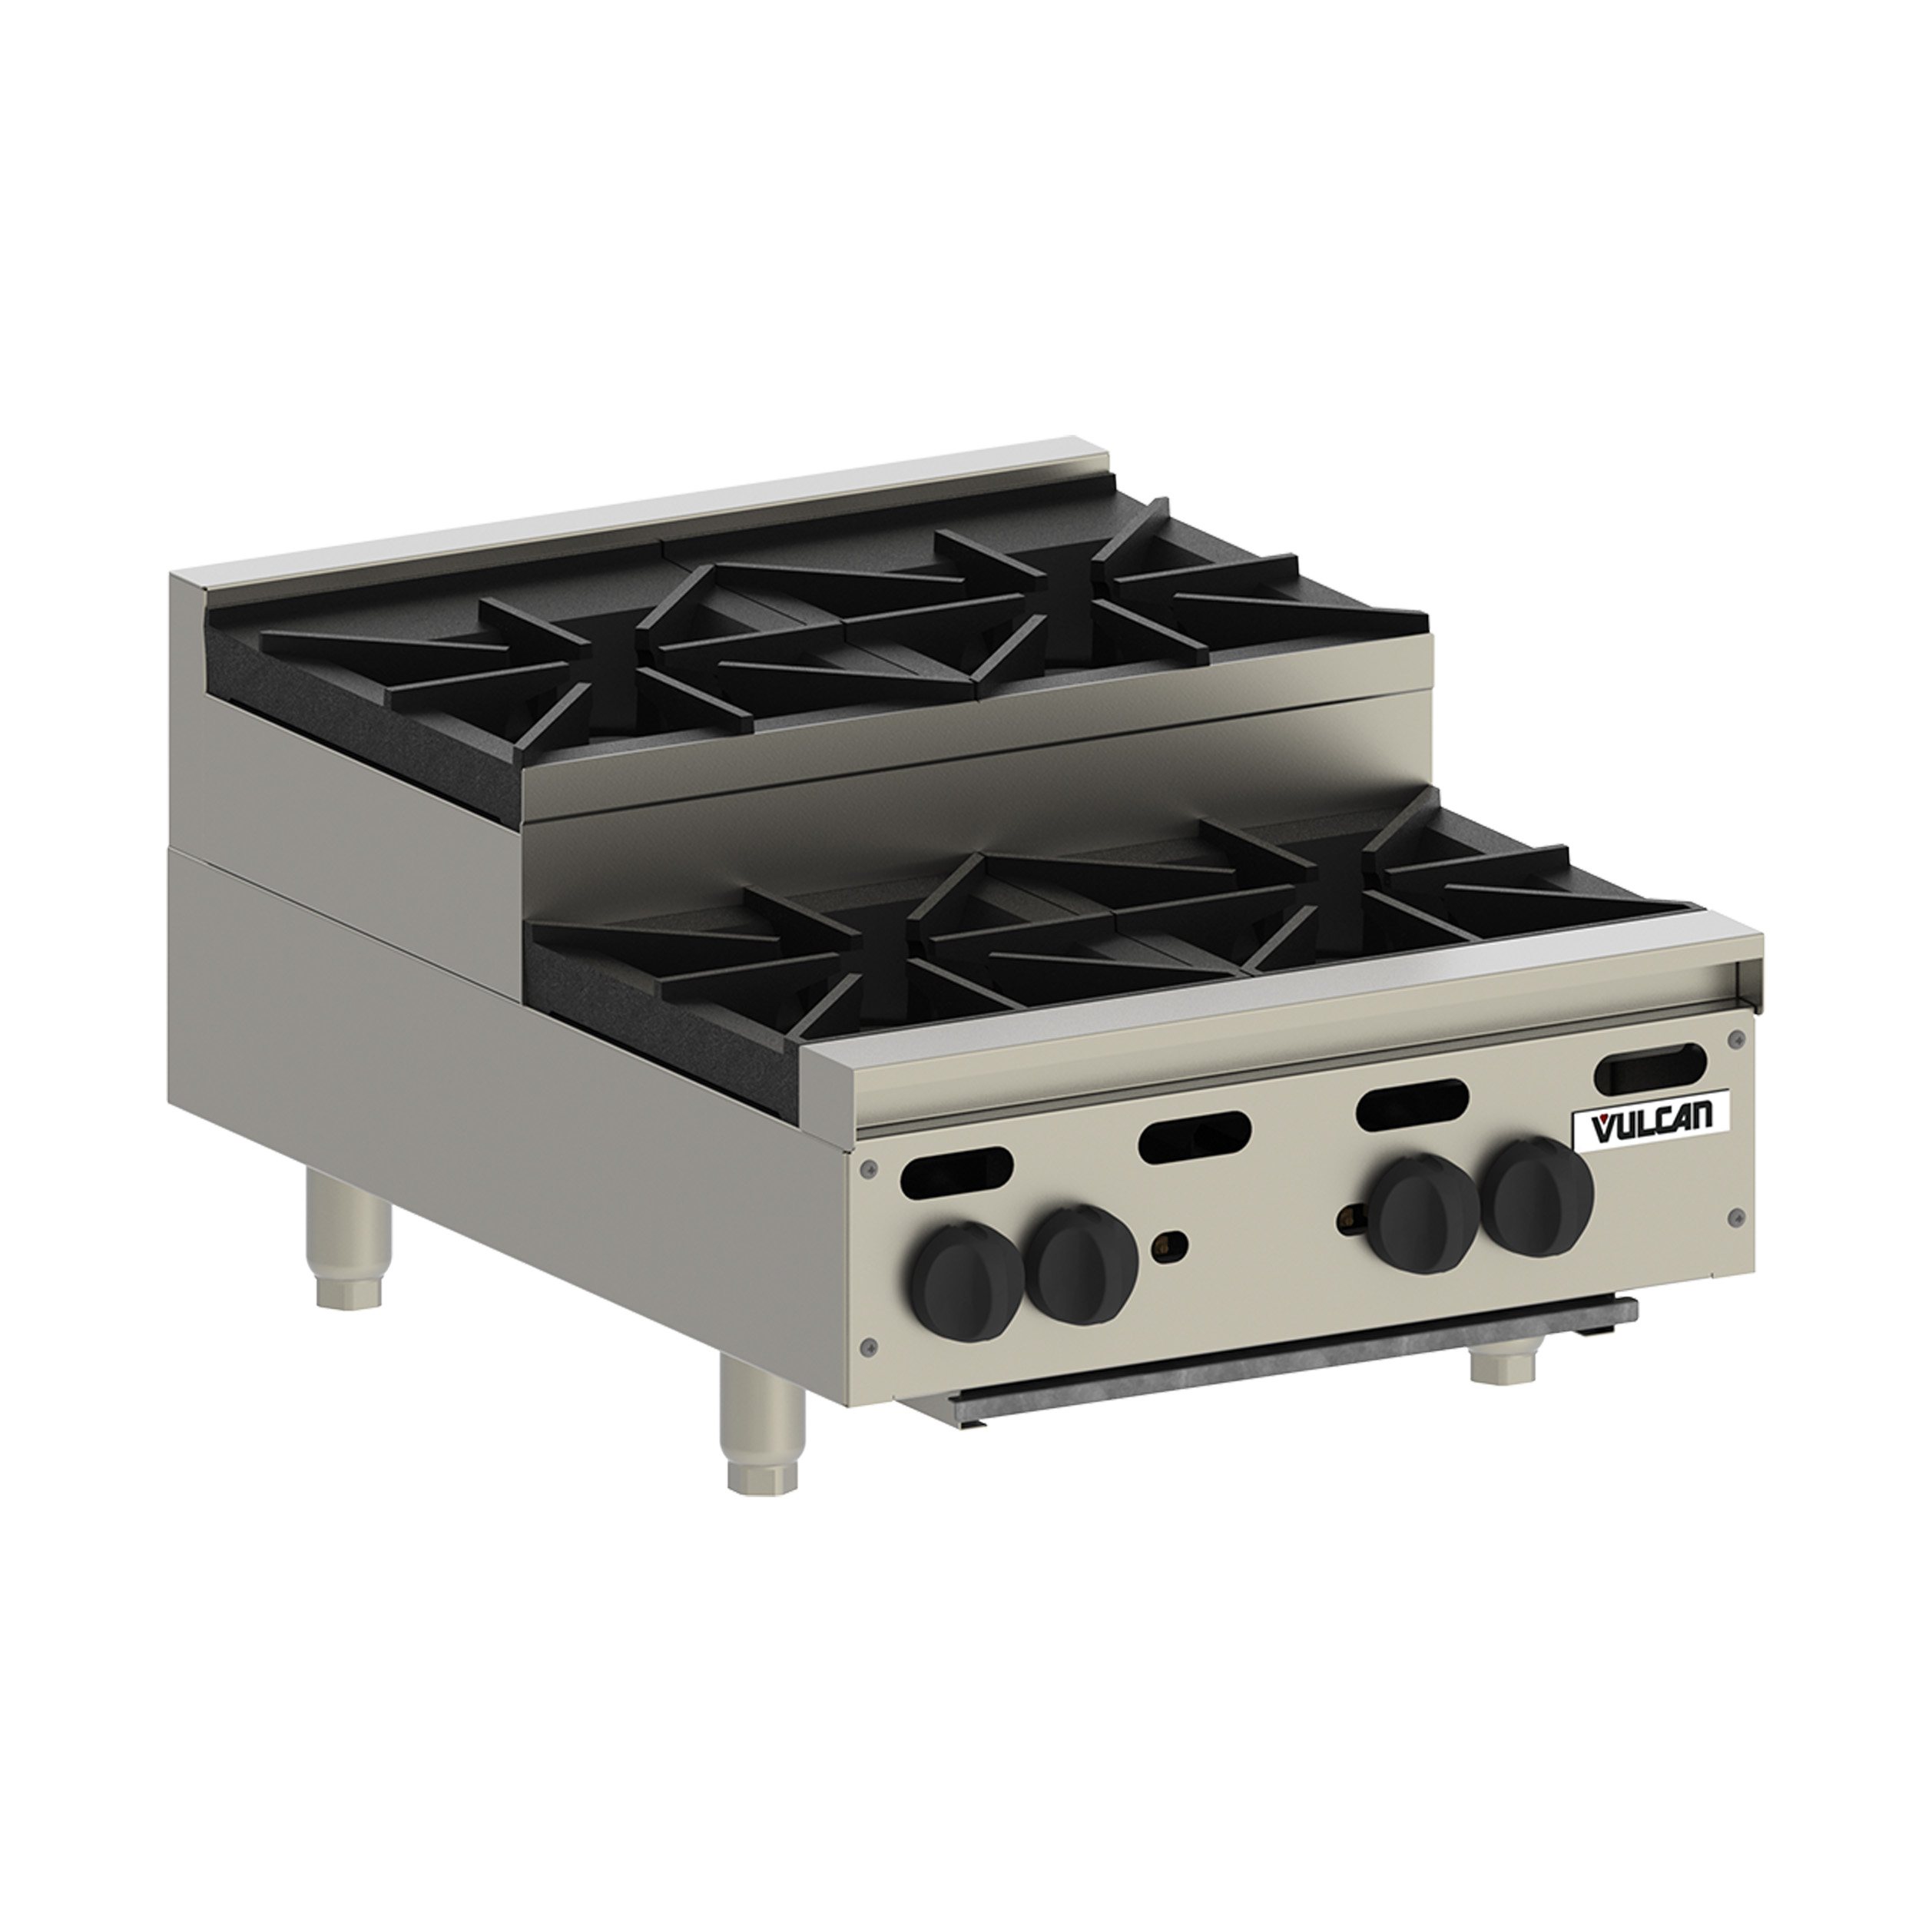 Vulcan VHP212U hotplate, countertop, gas